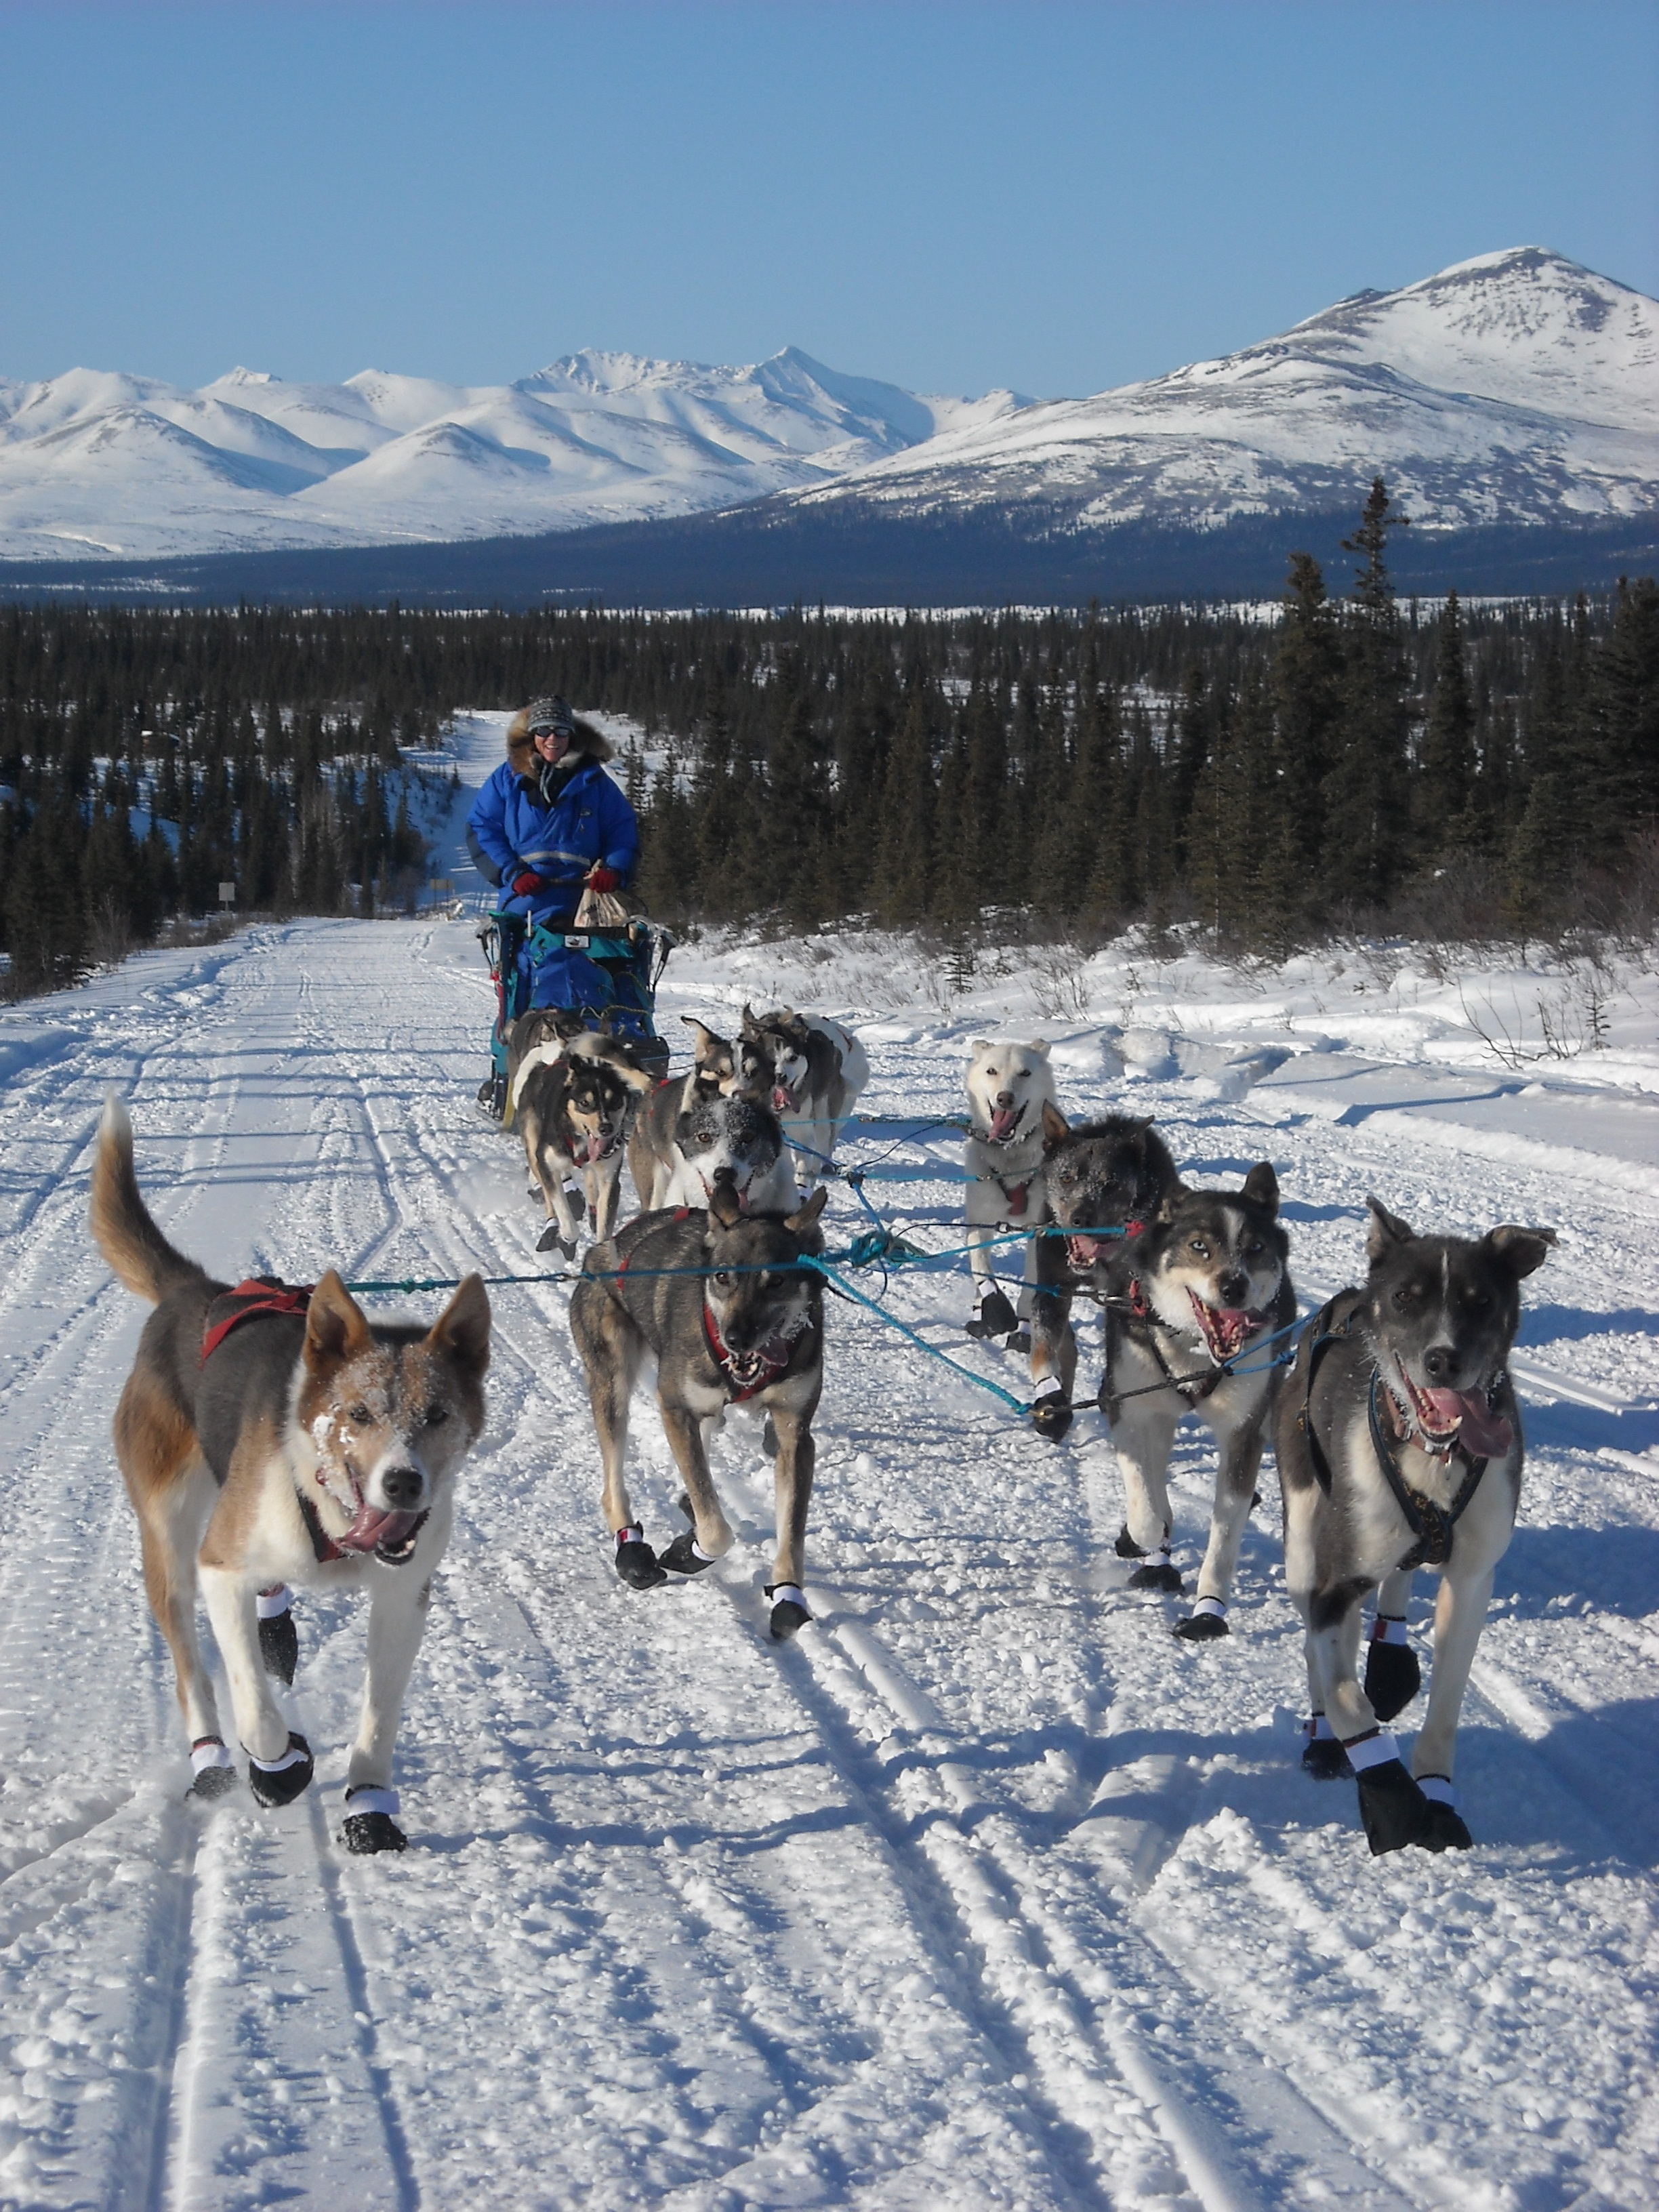 Debbie Moderow on the trail with her dogs outside of Denali Park, Alaska.